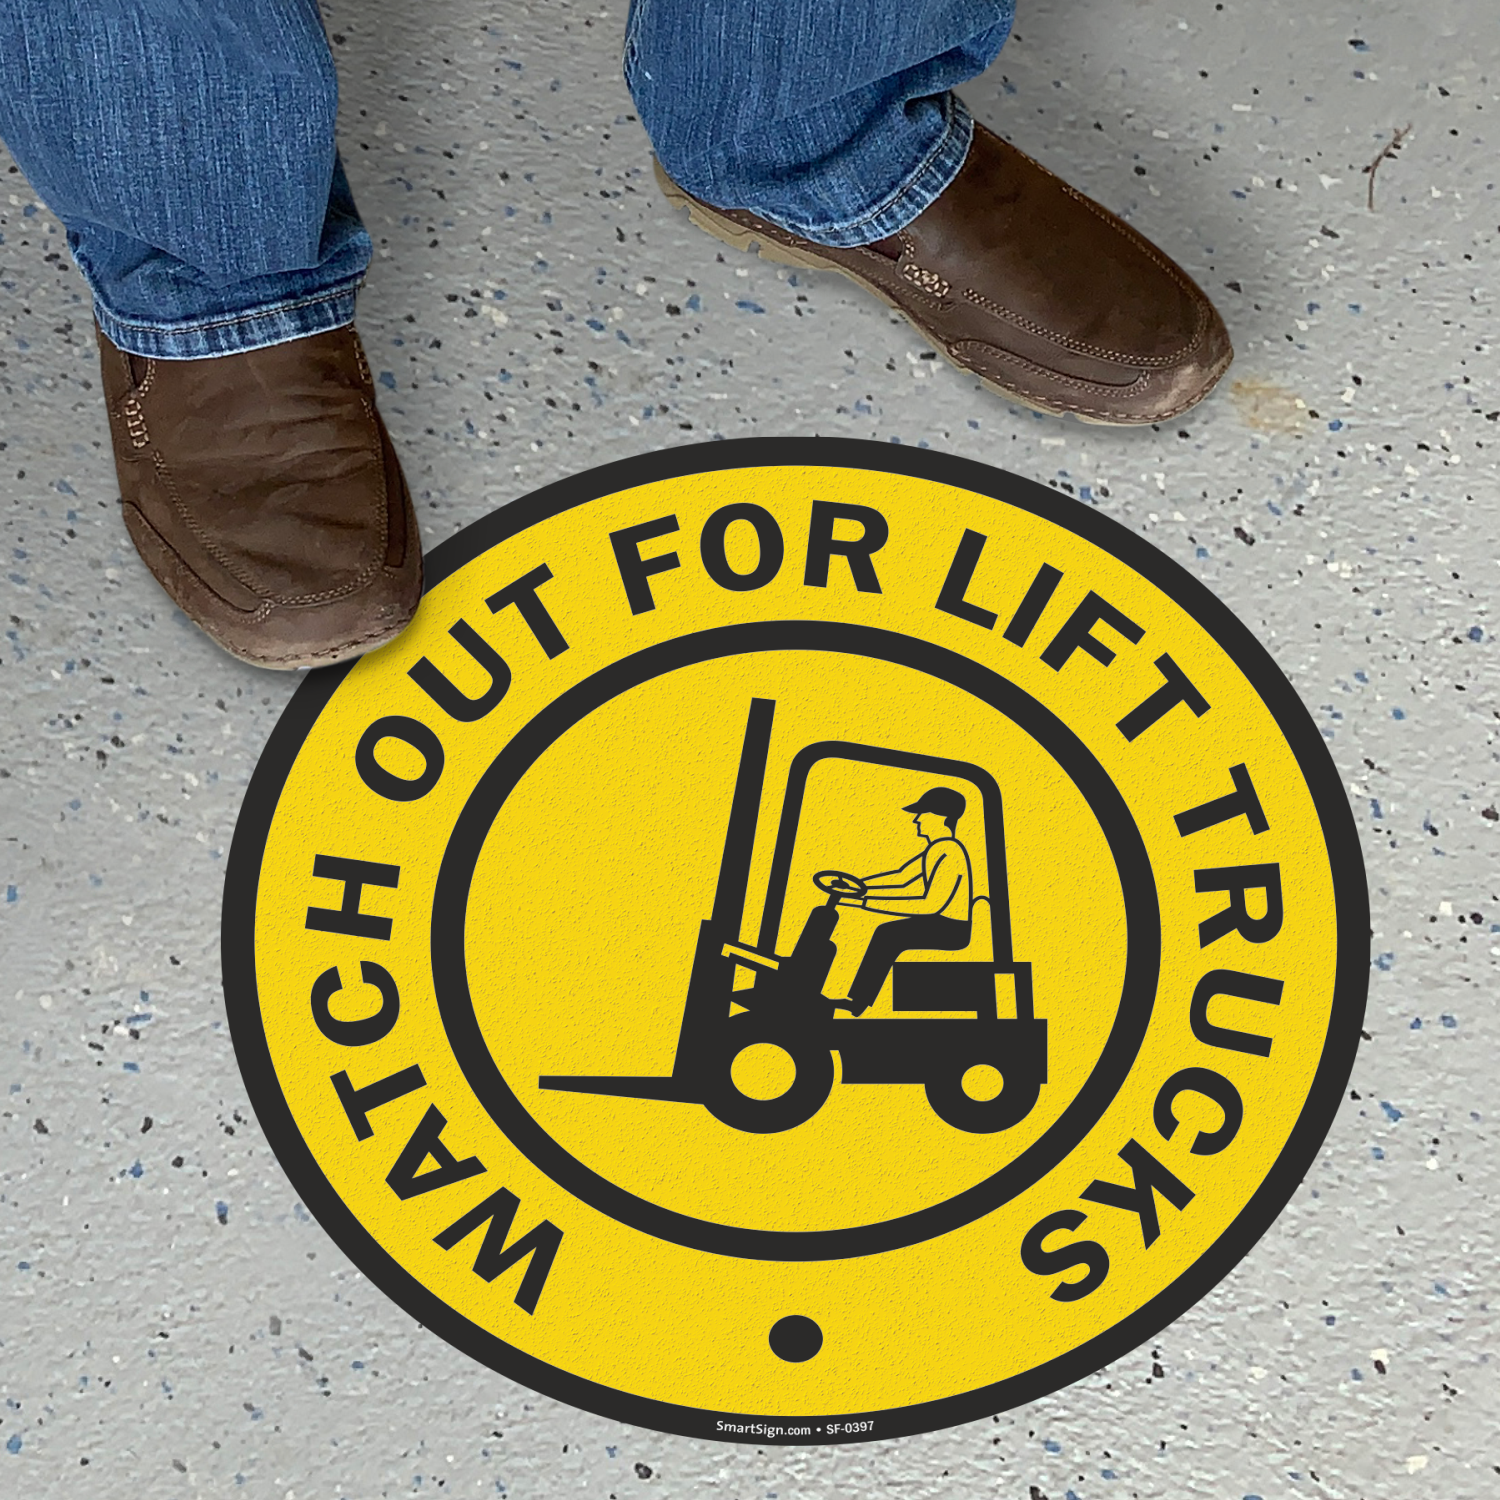 Watch Out For Lift Trucks SlipSafe Floor Sign